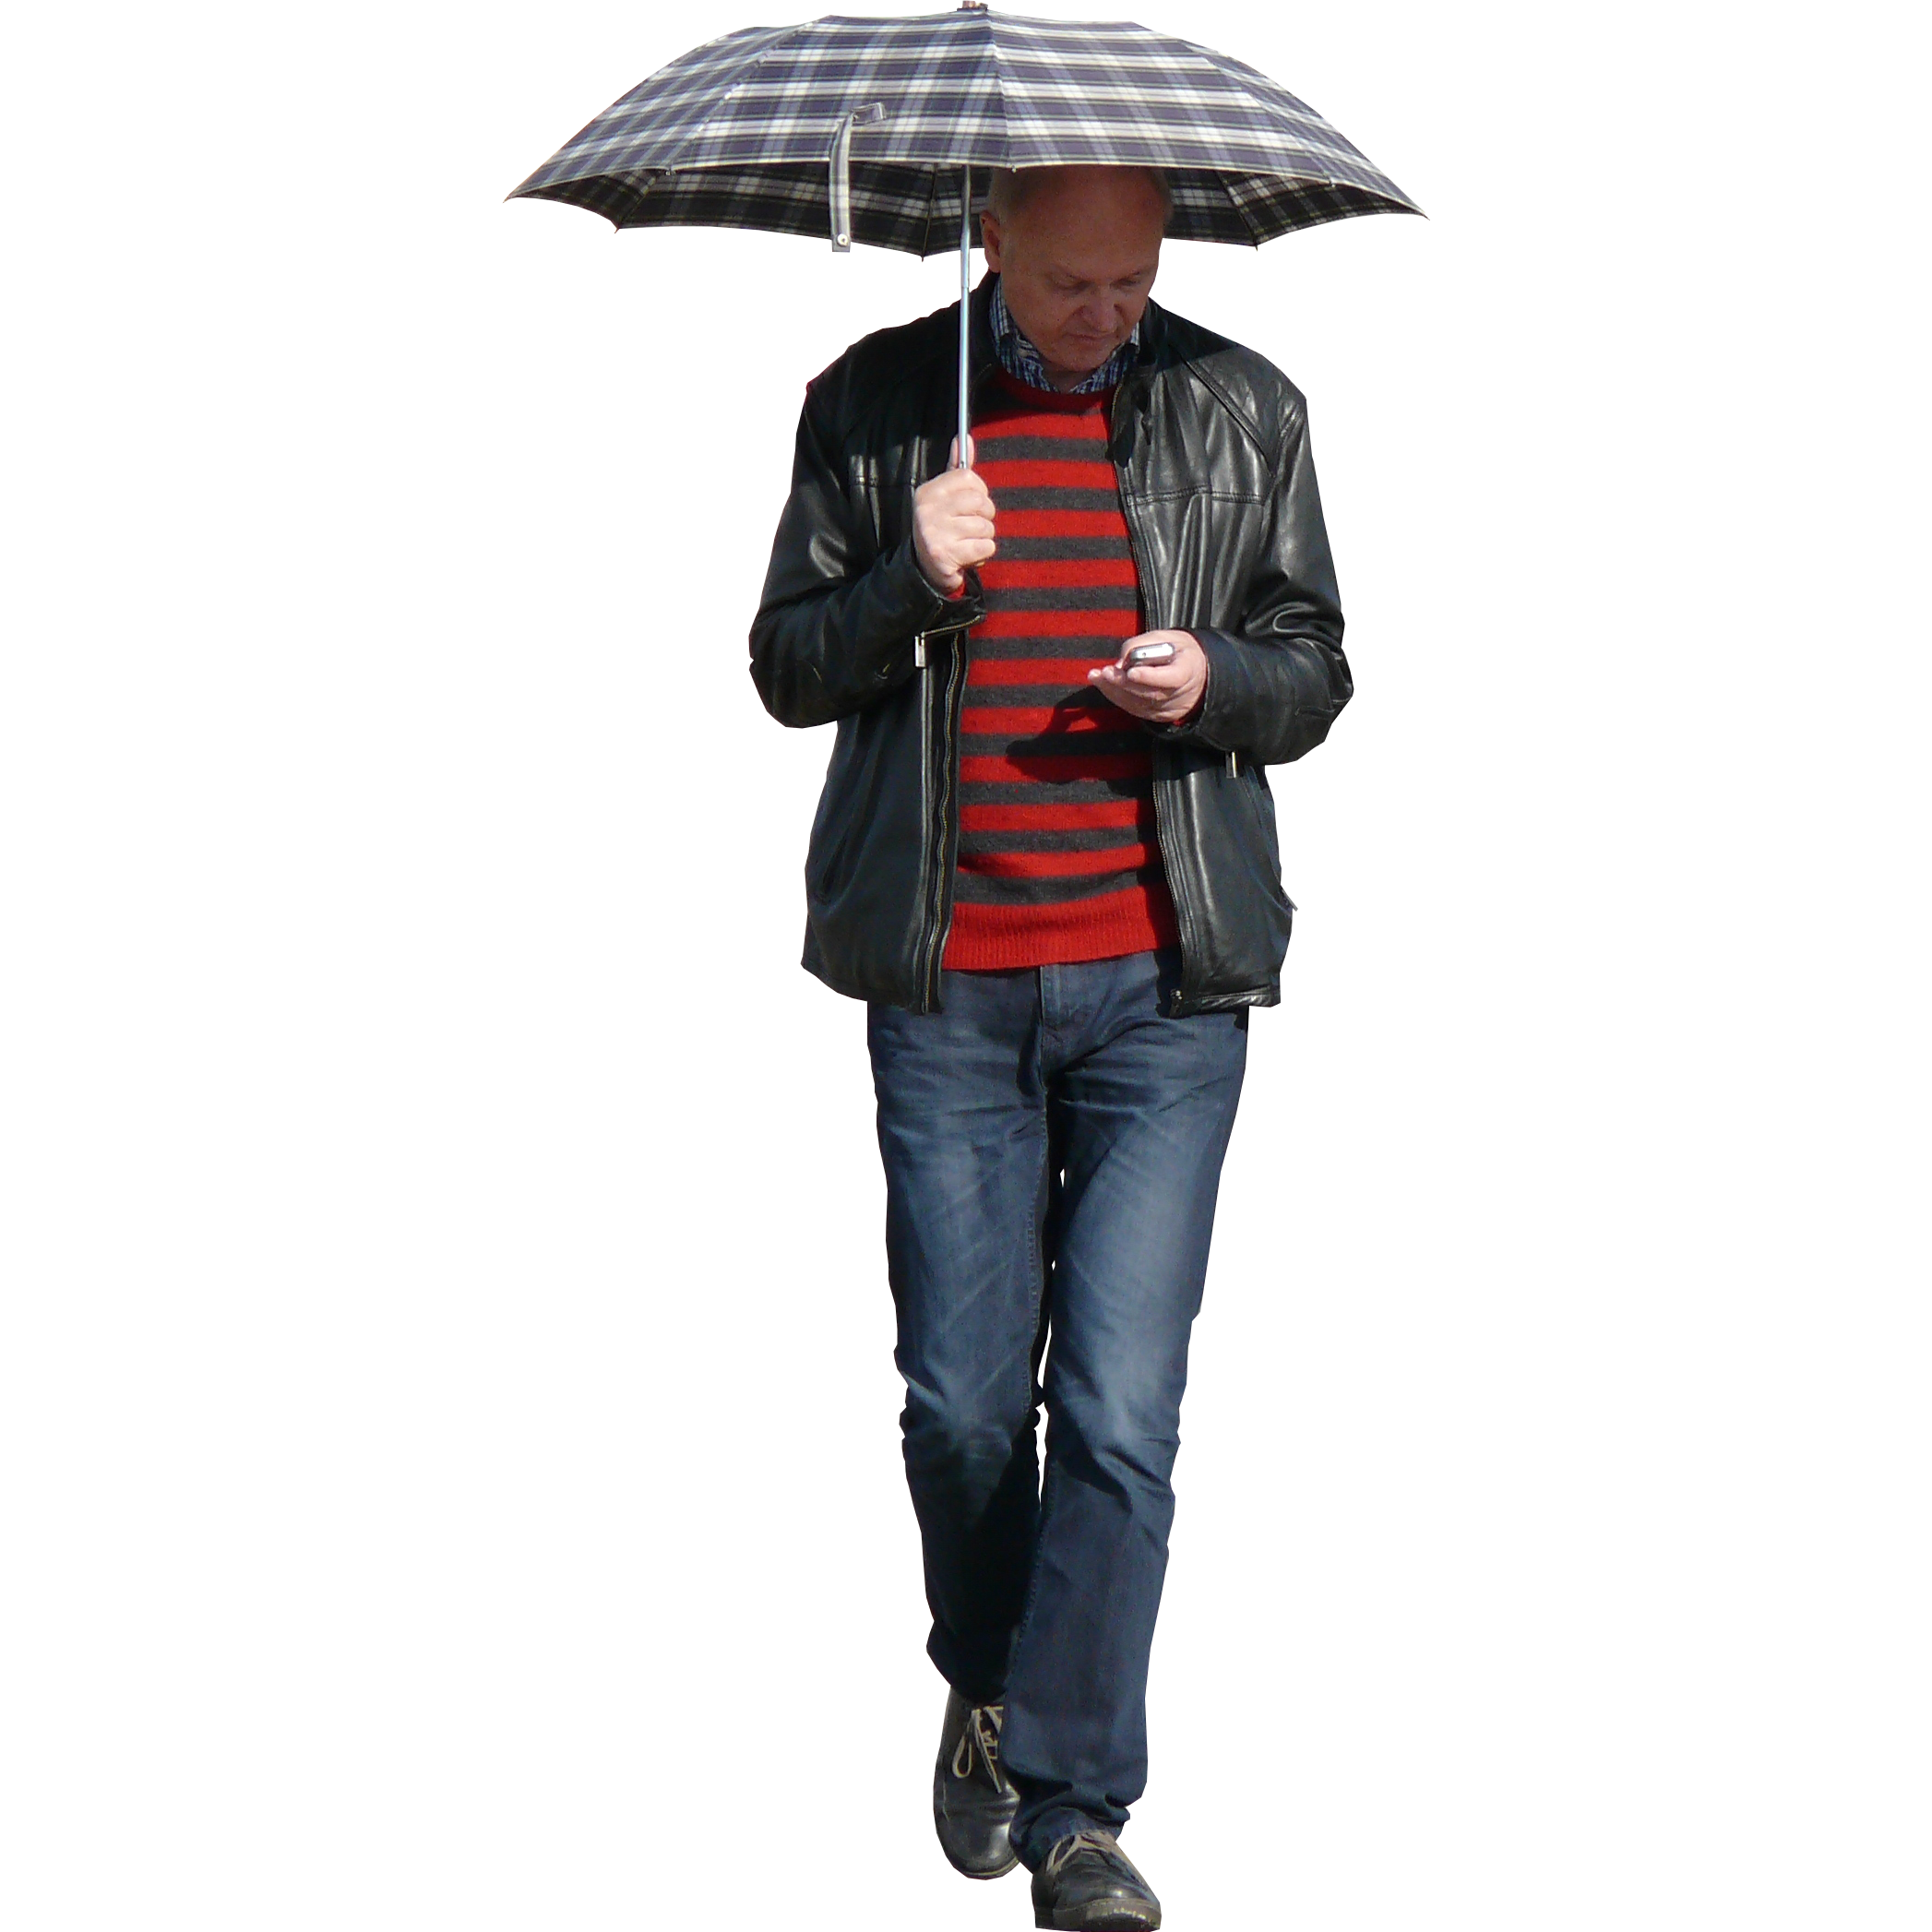 Imagenatives 0025 man with umbrella cutout